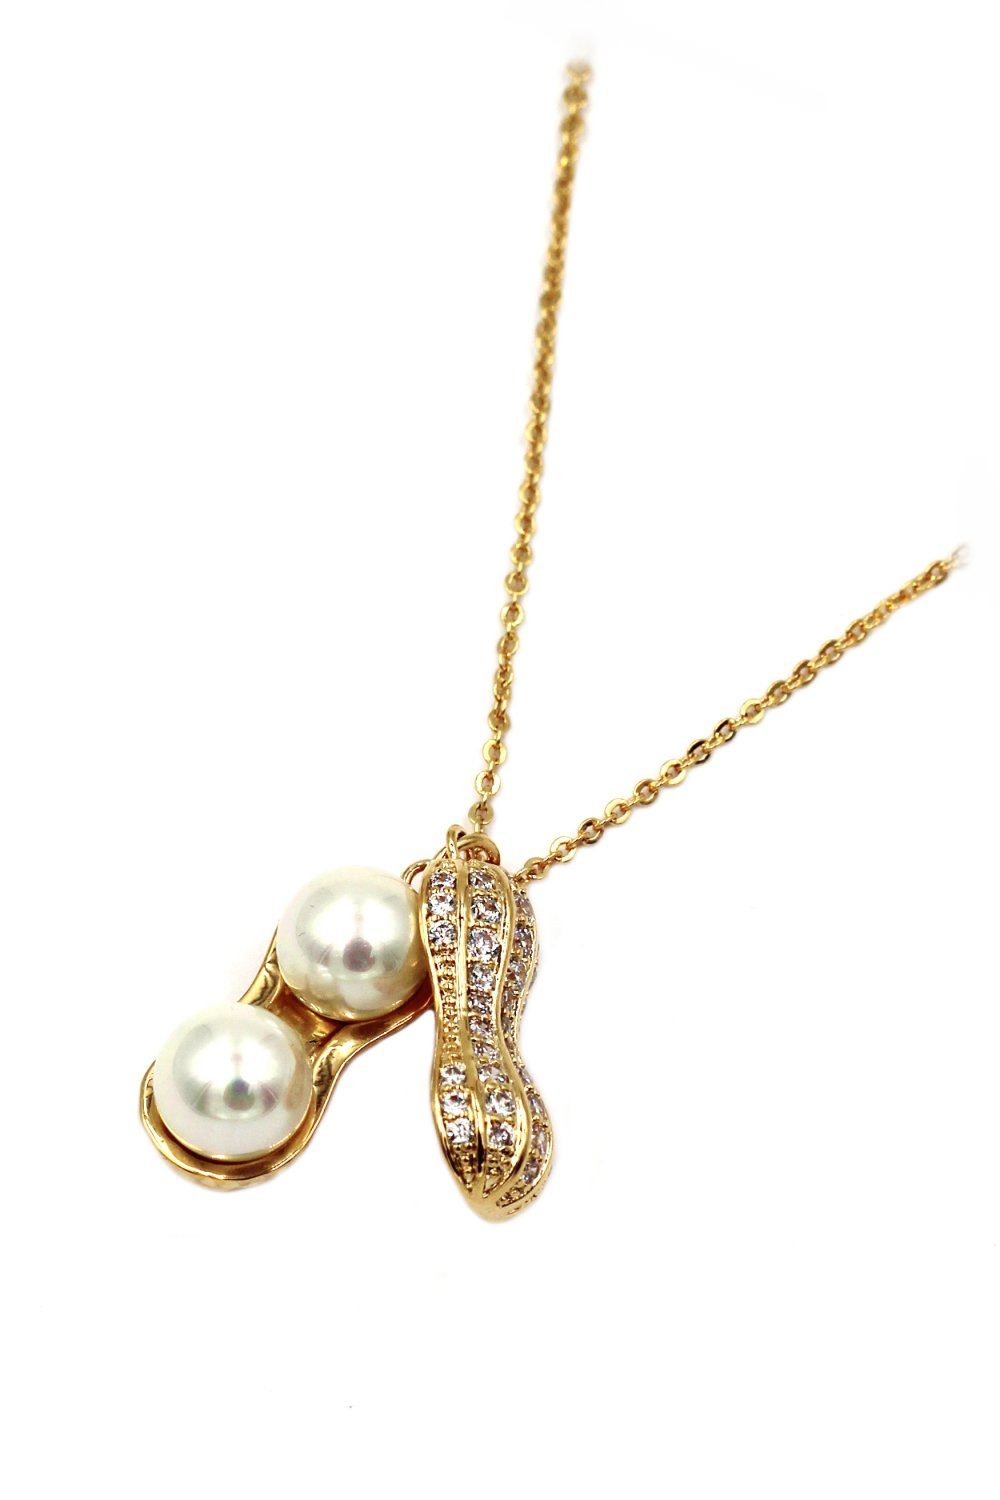 Peanut shape exquisite pearl gold necklace